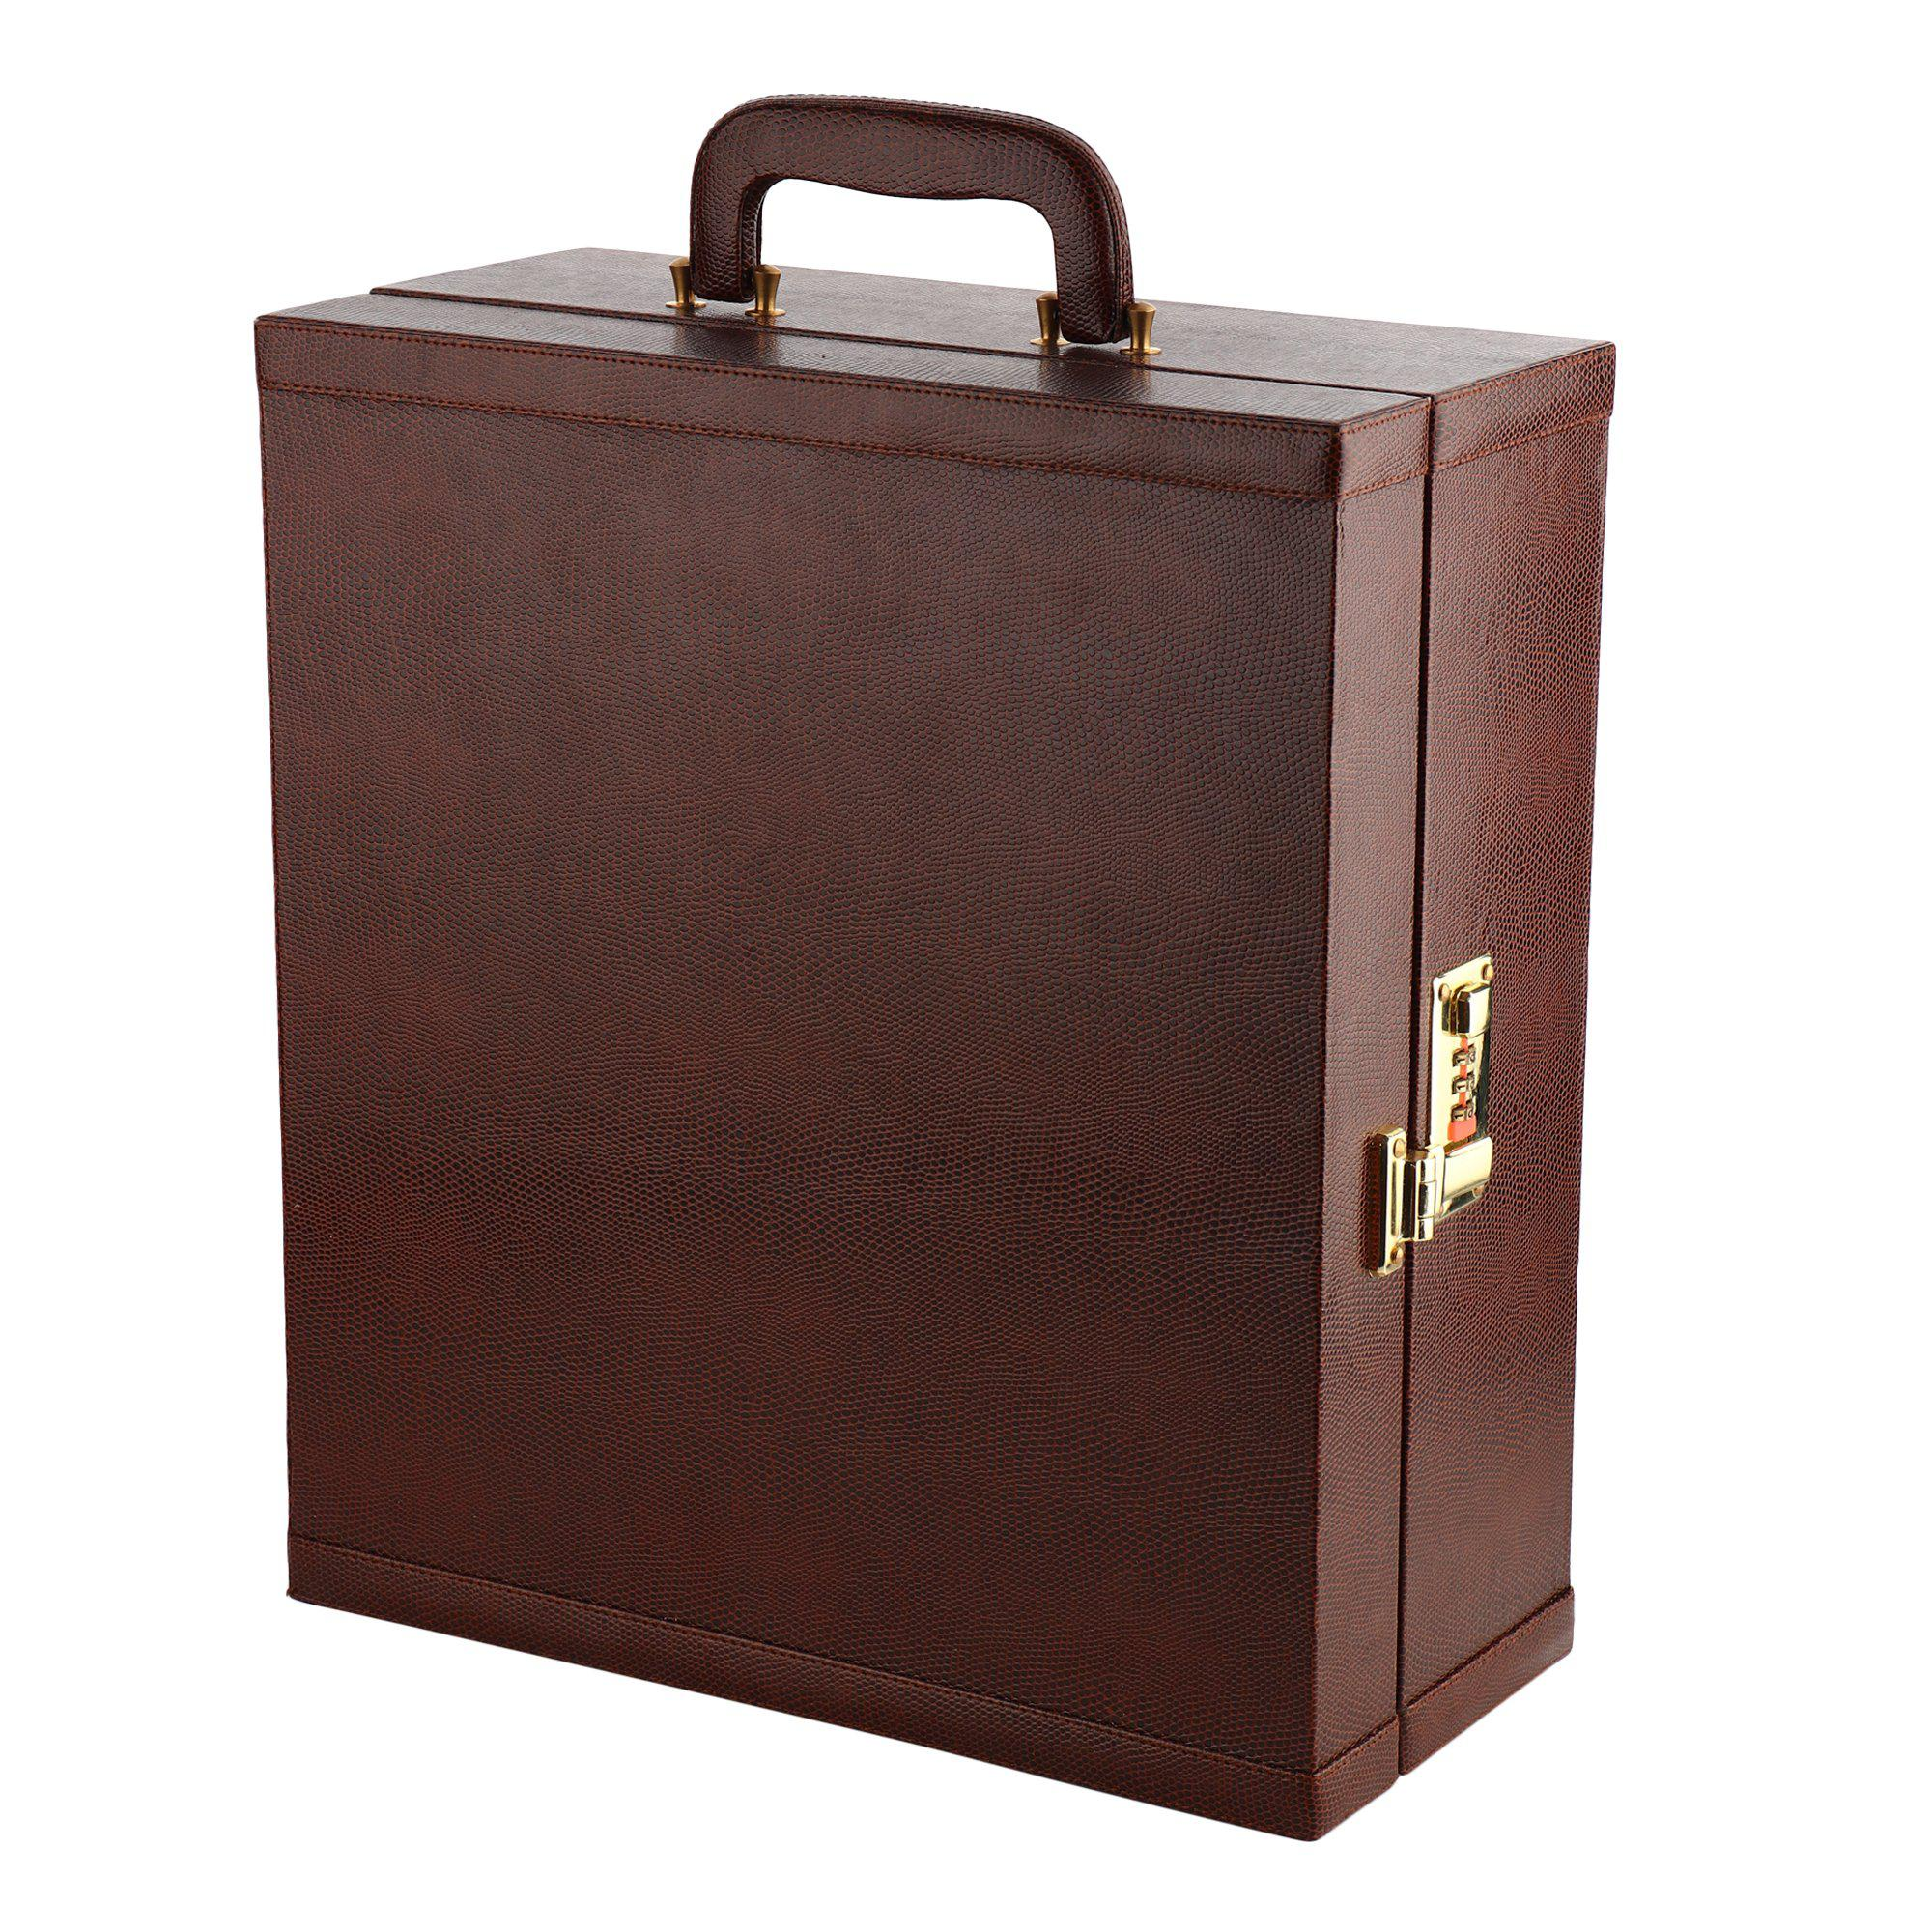 Portable Bar Set (Brown Leather)